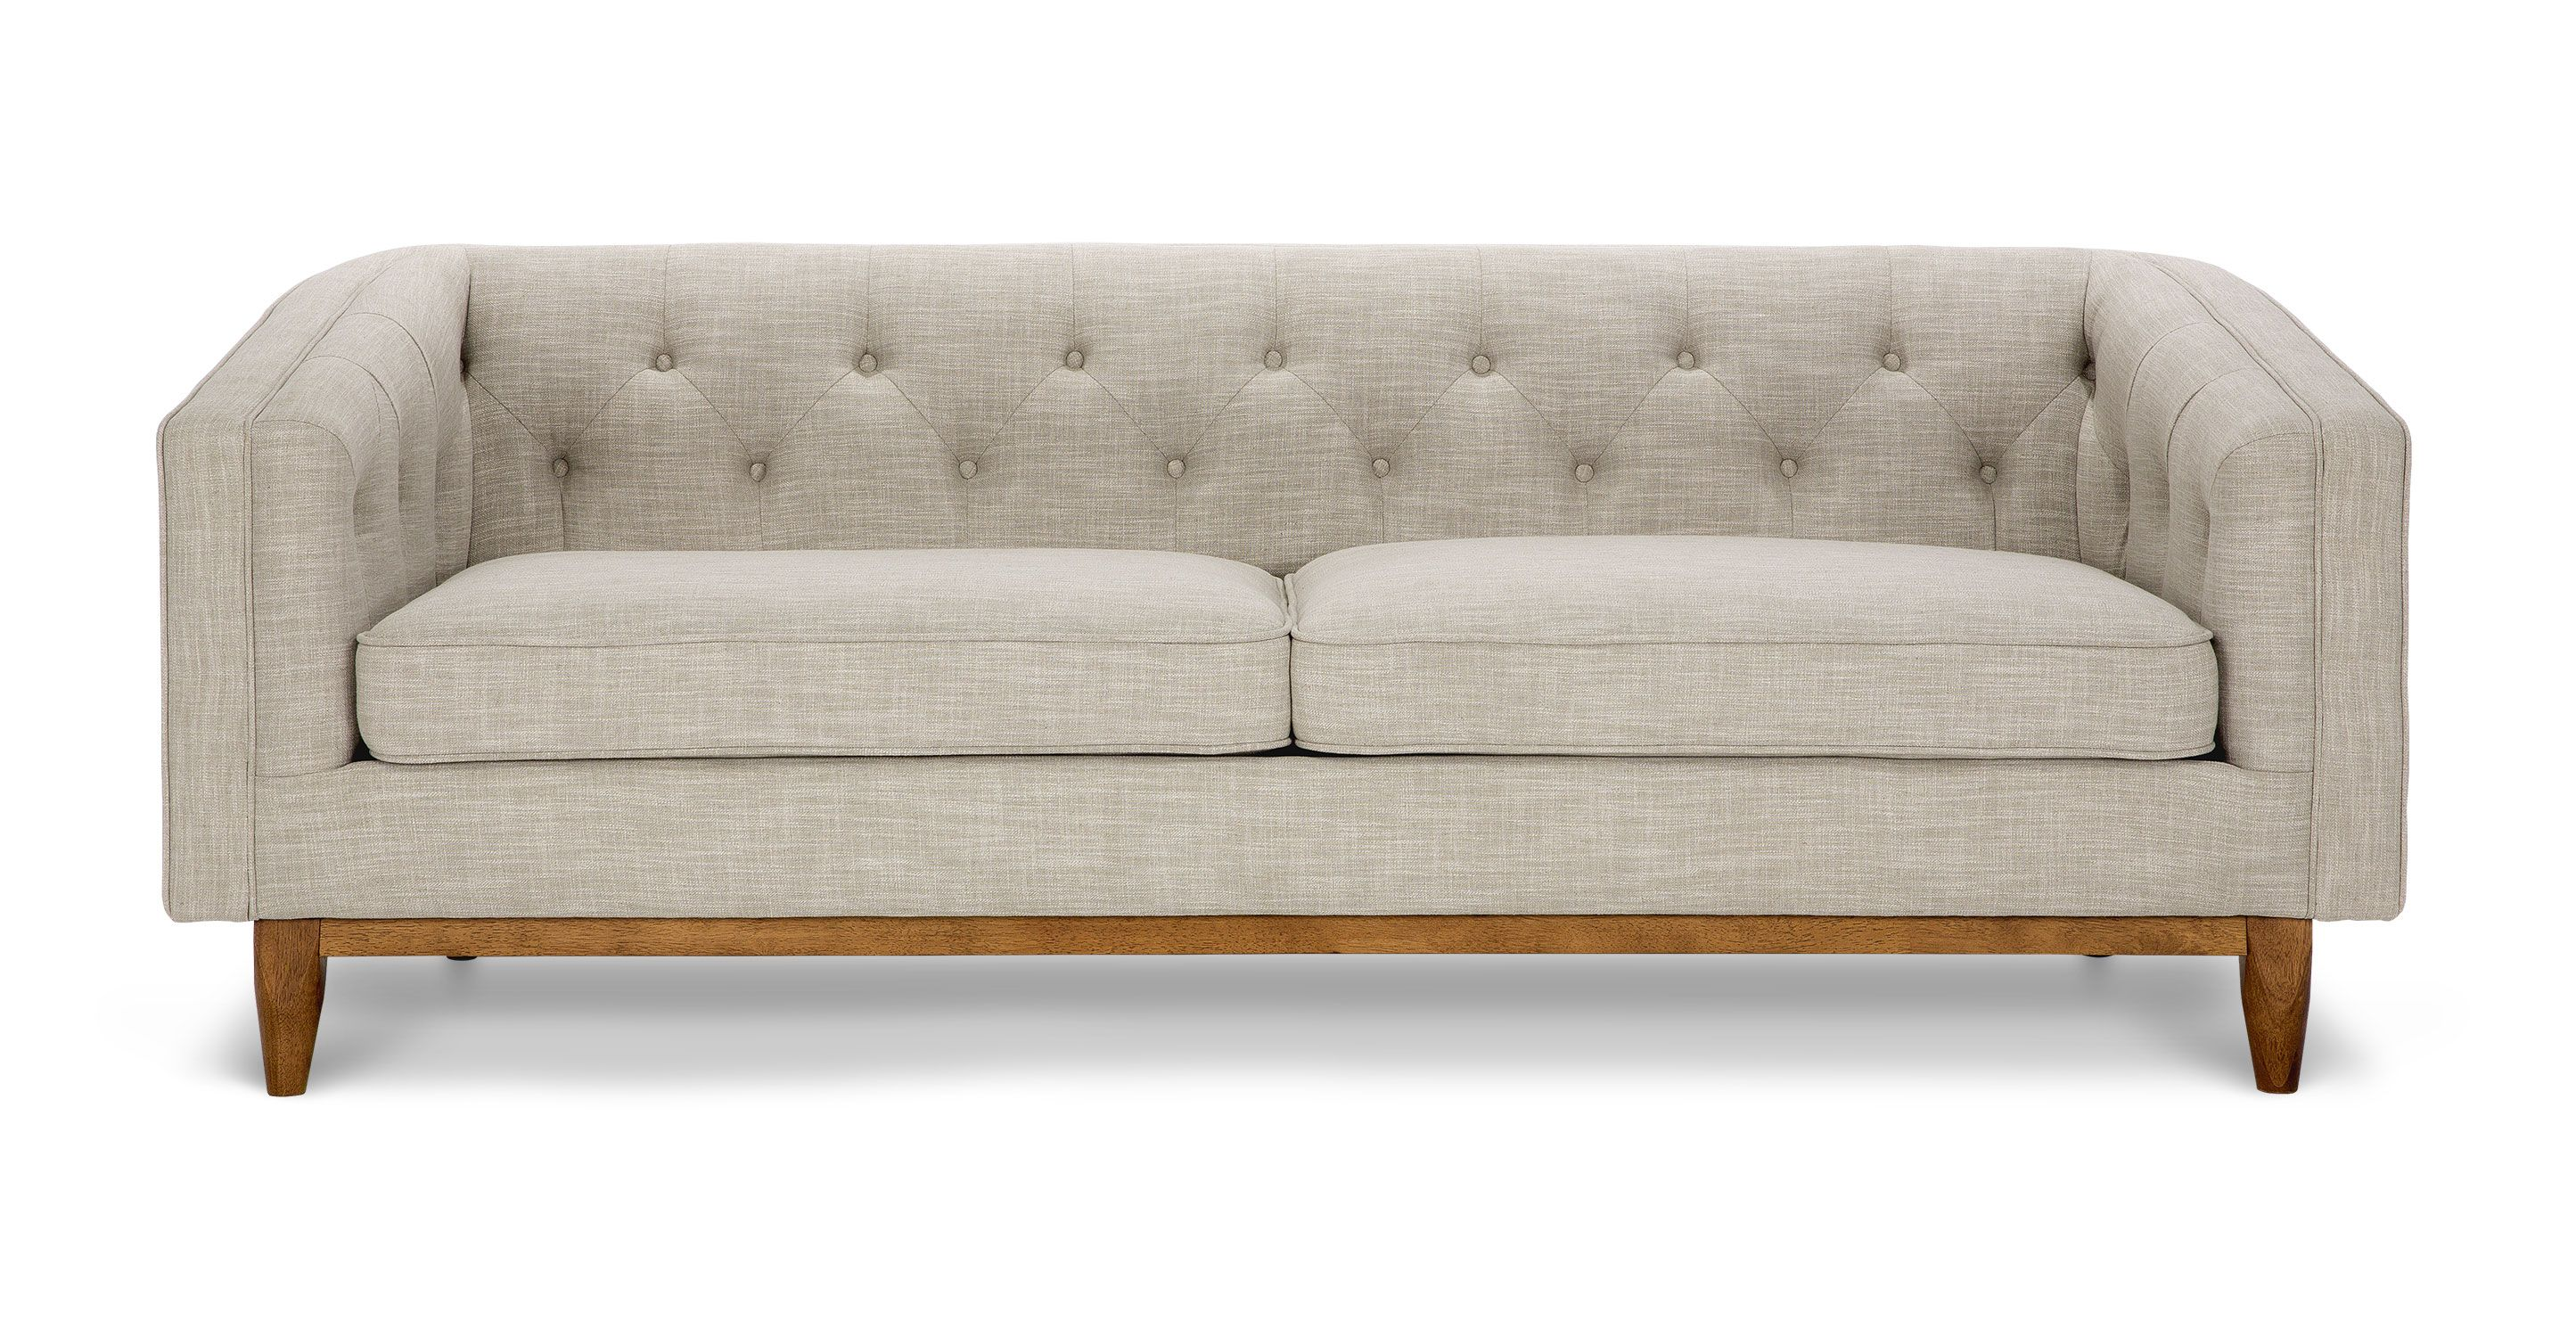 Gray Tufted Sofa 3 Seat Wooden Base